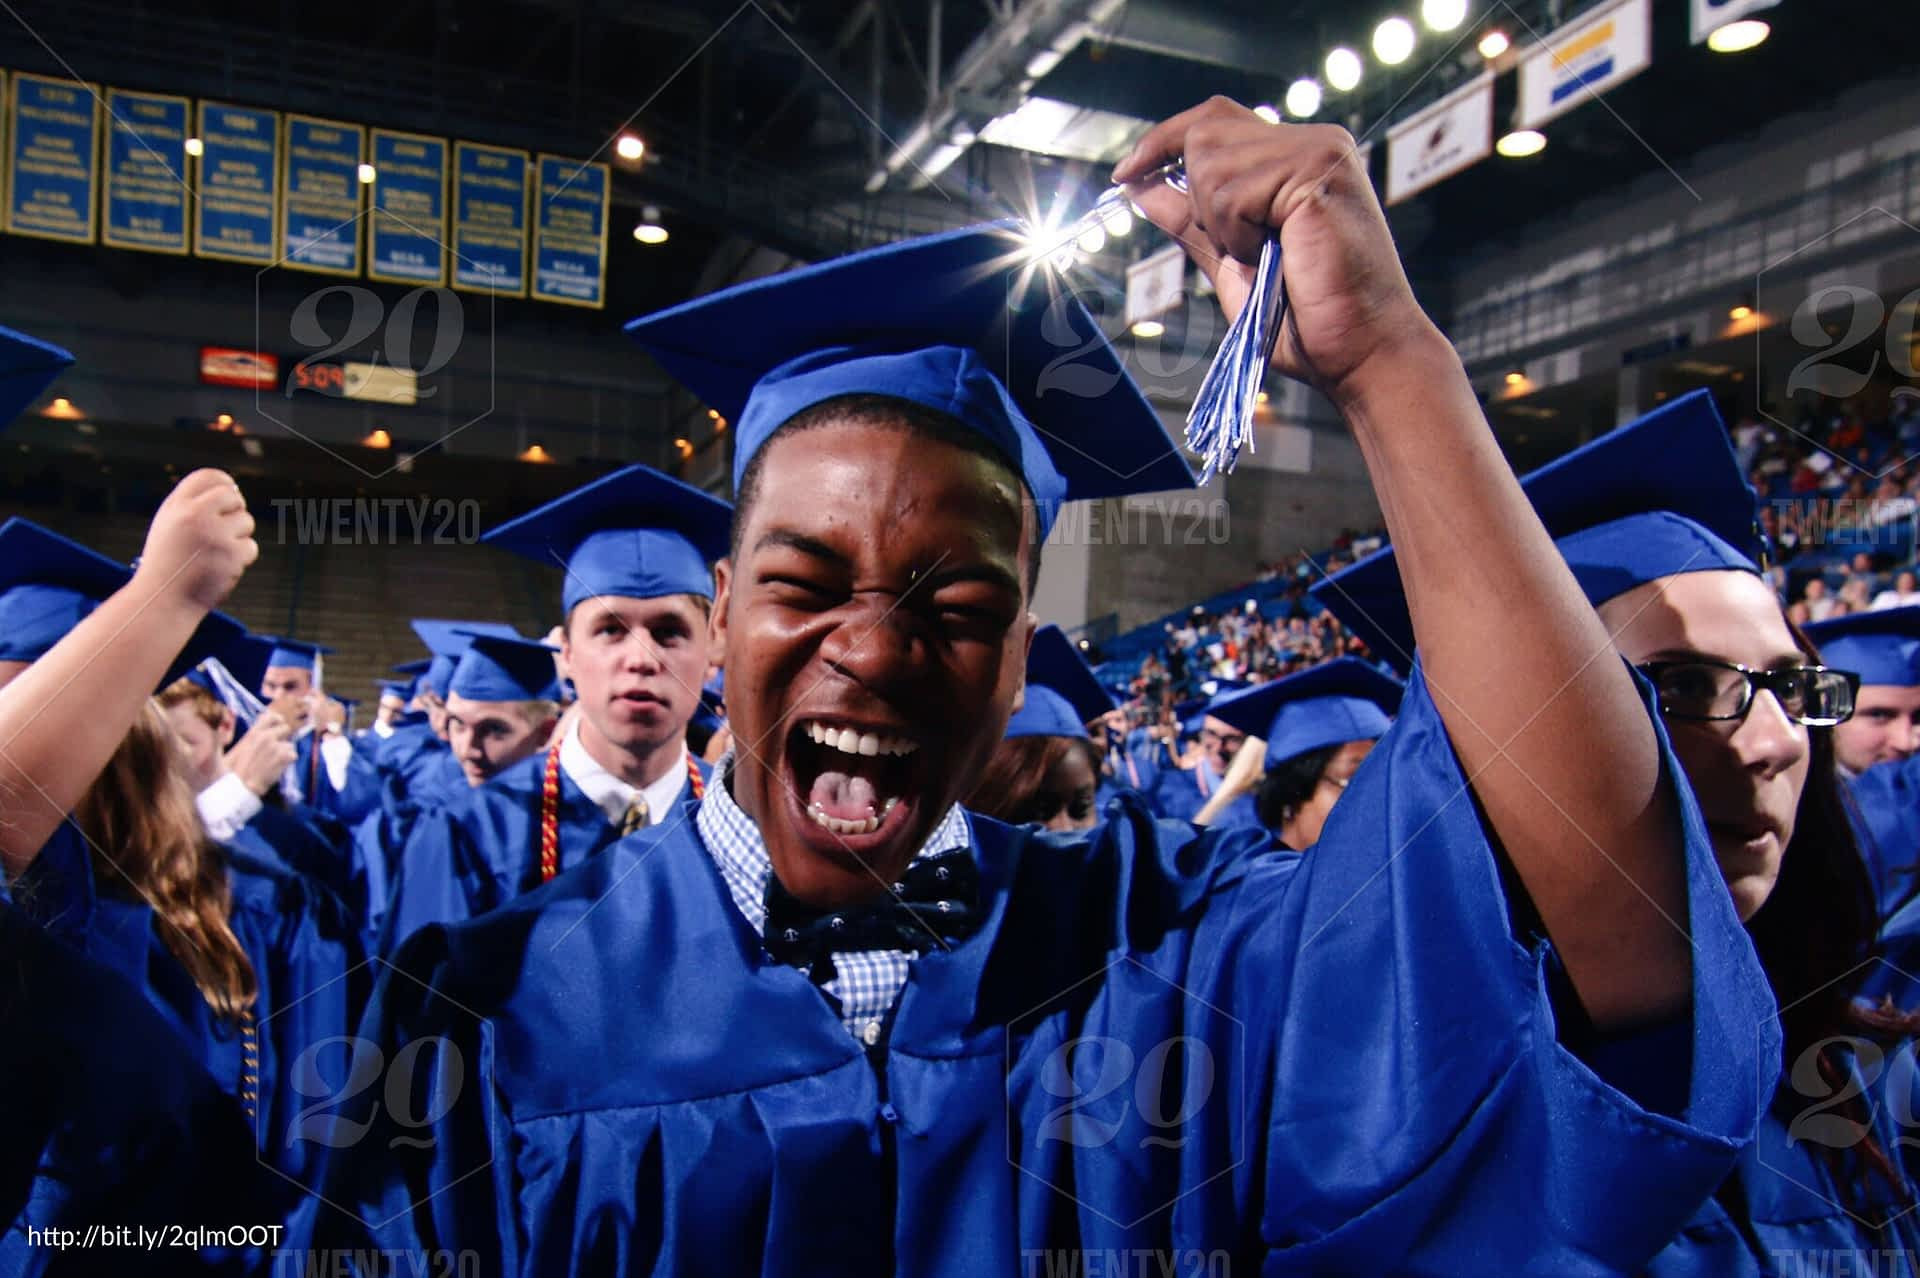 candidate-for-graduation-jermaine-meadows-jr-celebrating-while-moving-his-tassel_t20_rOjnJz.comp